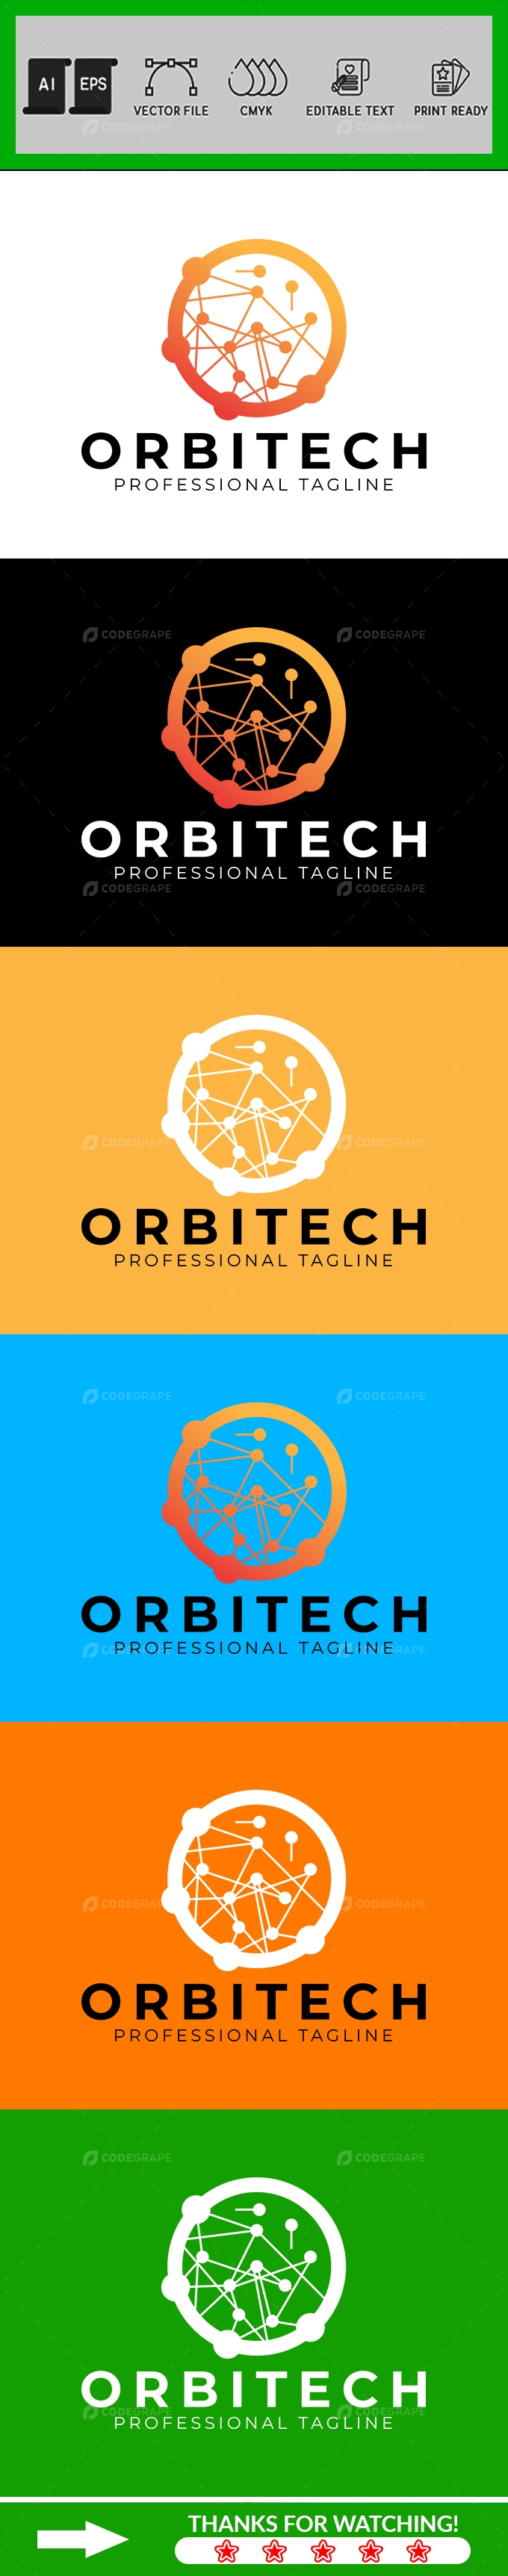 Orbital Abstract Logo Design Template